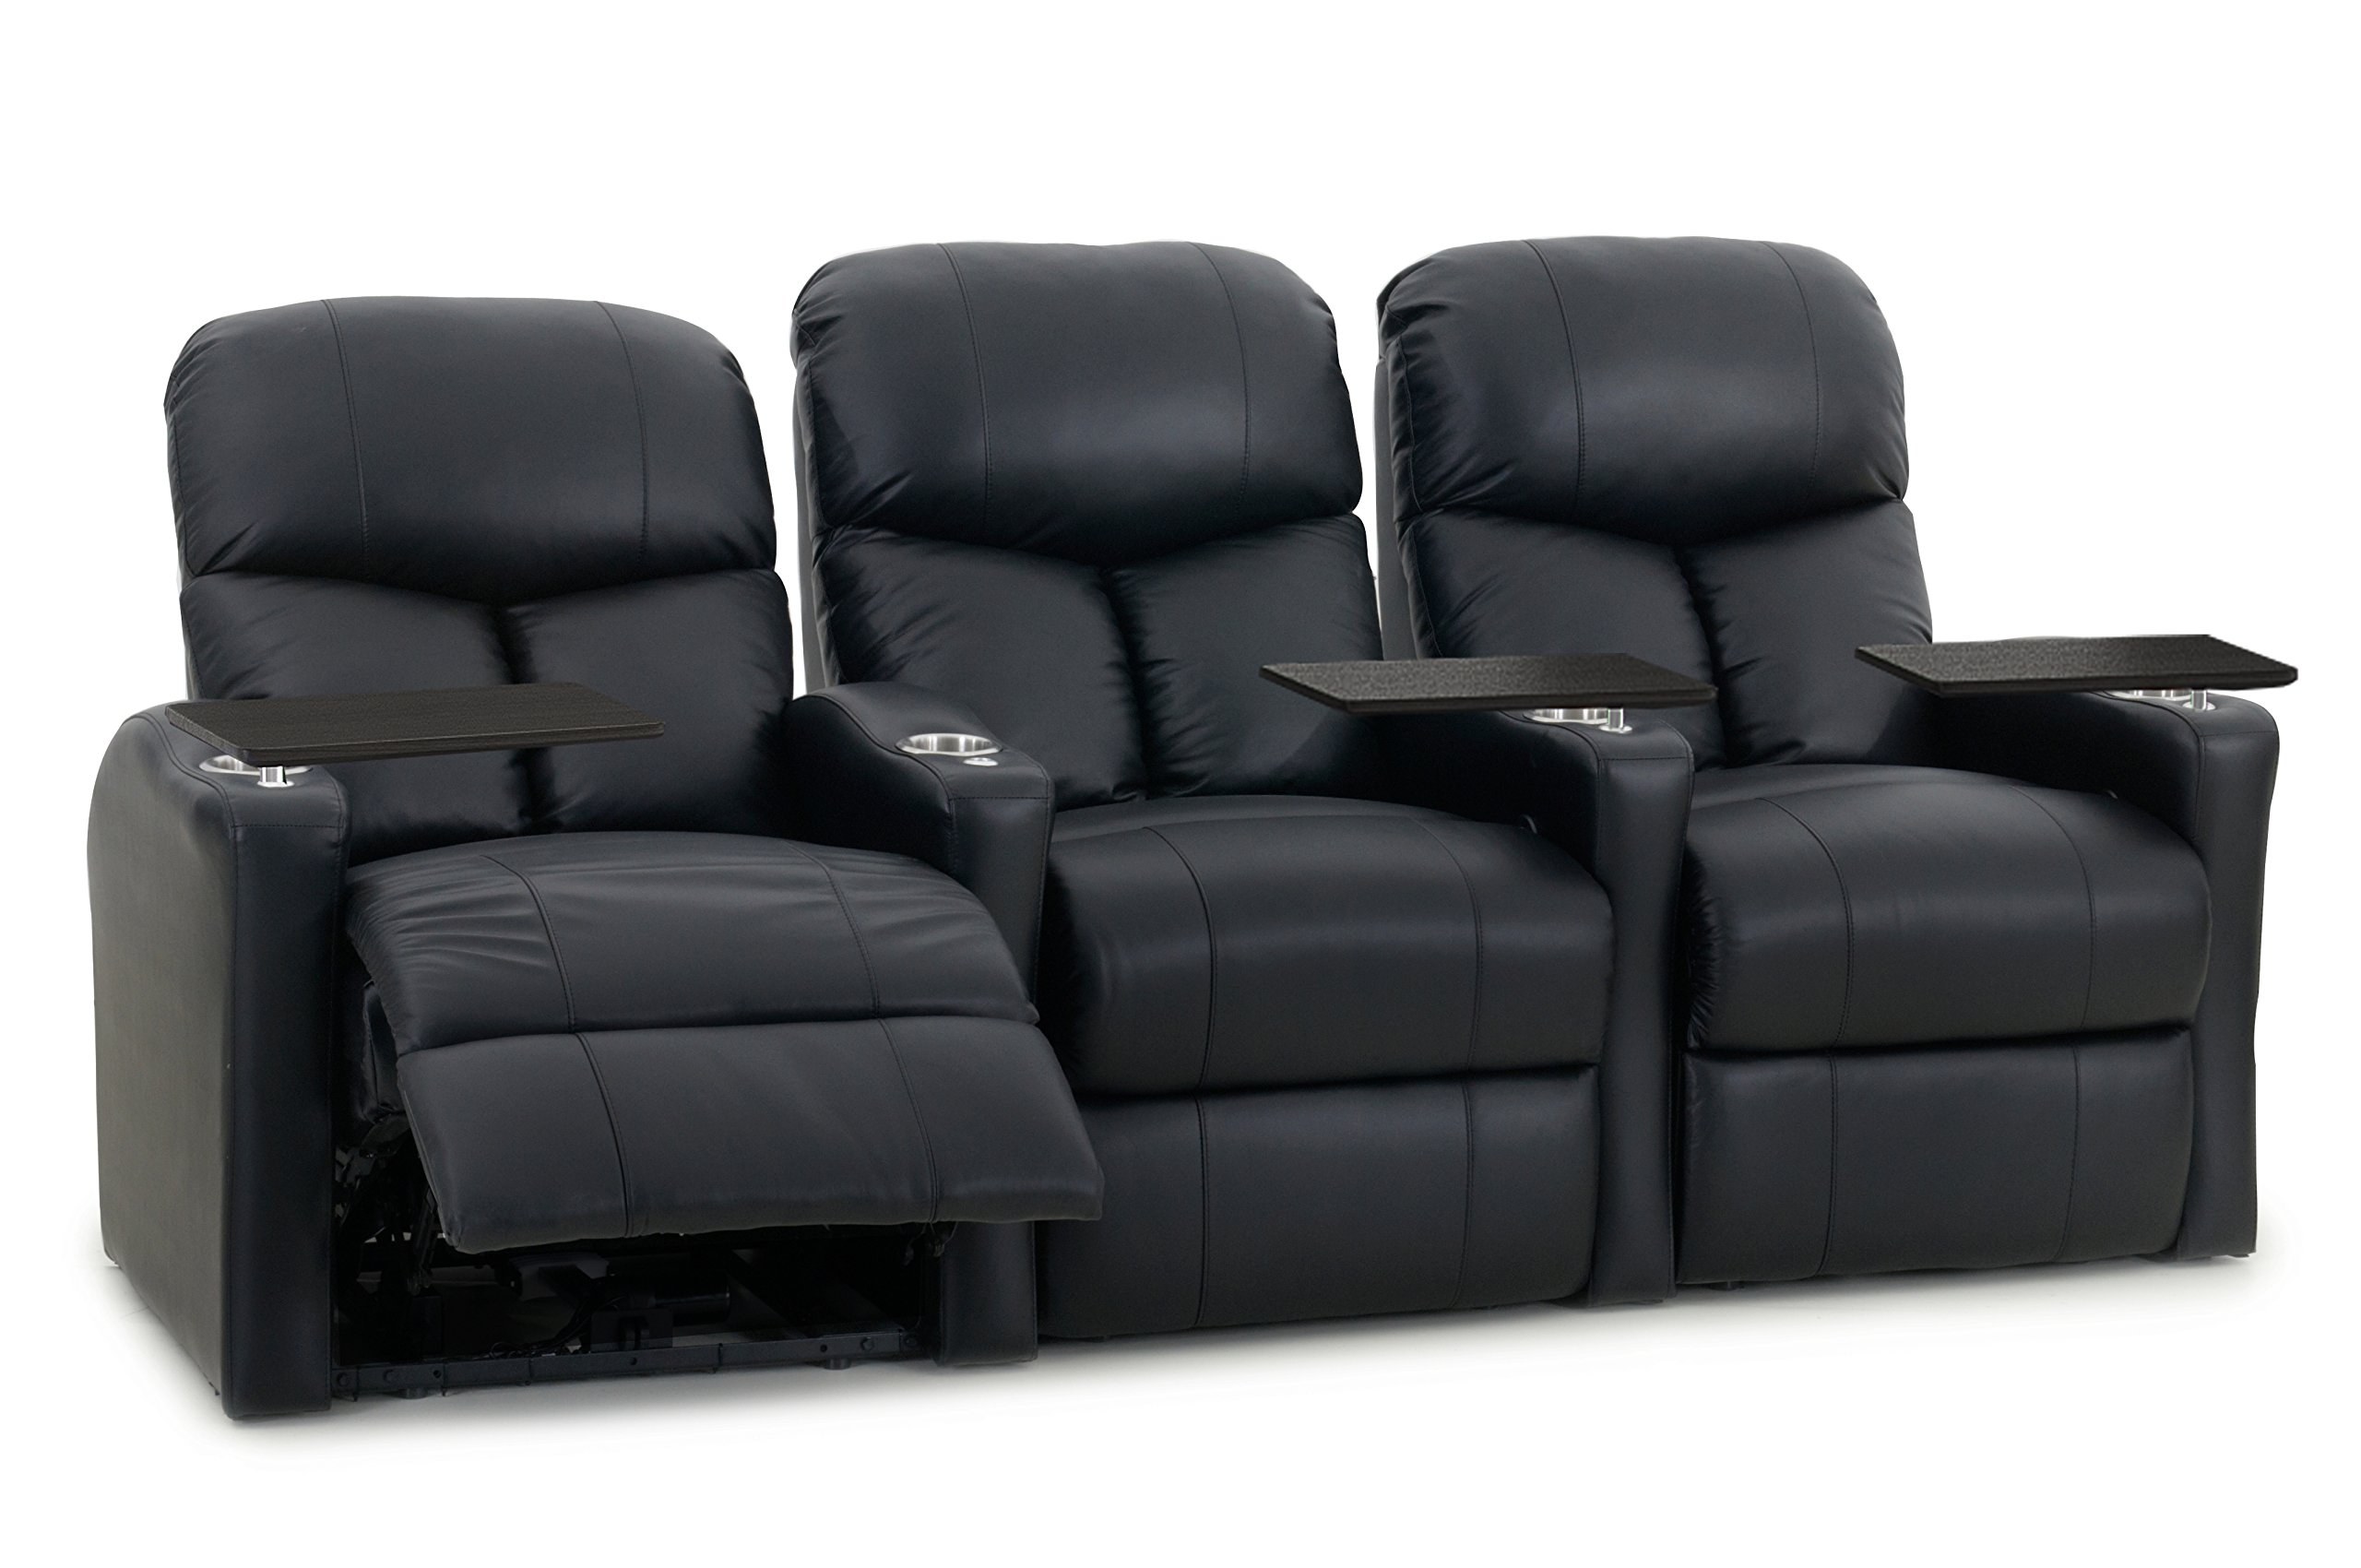 Octane Seating BOLT-R3SP-BND-BL Octane Bolt XS400 Motorized Leather Home Theater Recliner Set (Row of 3)